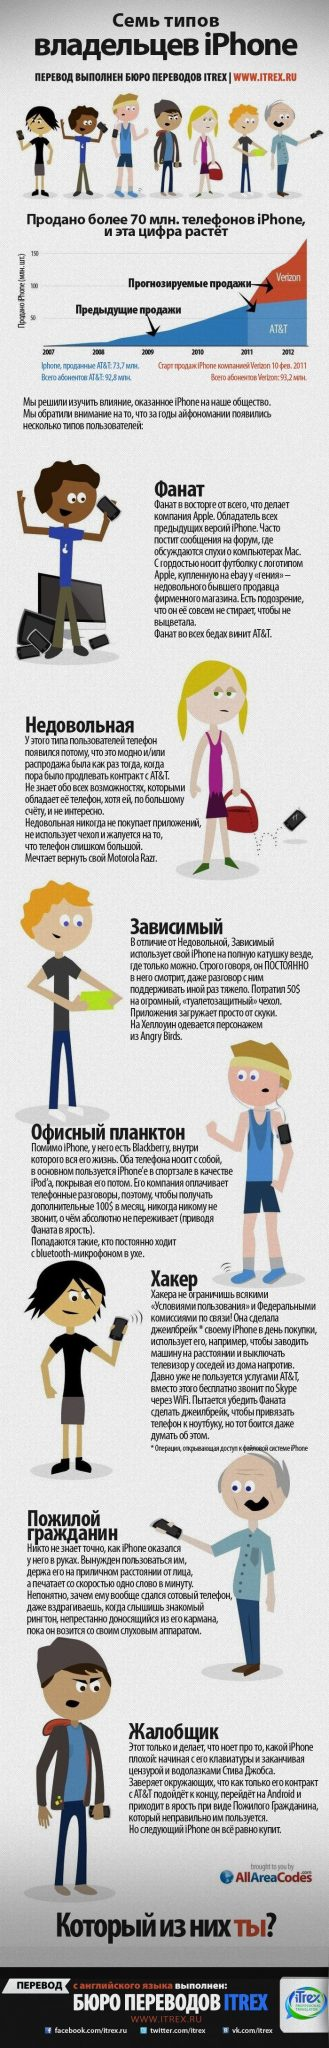 You are currently viewing Семь типов владельцев iPhone